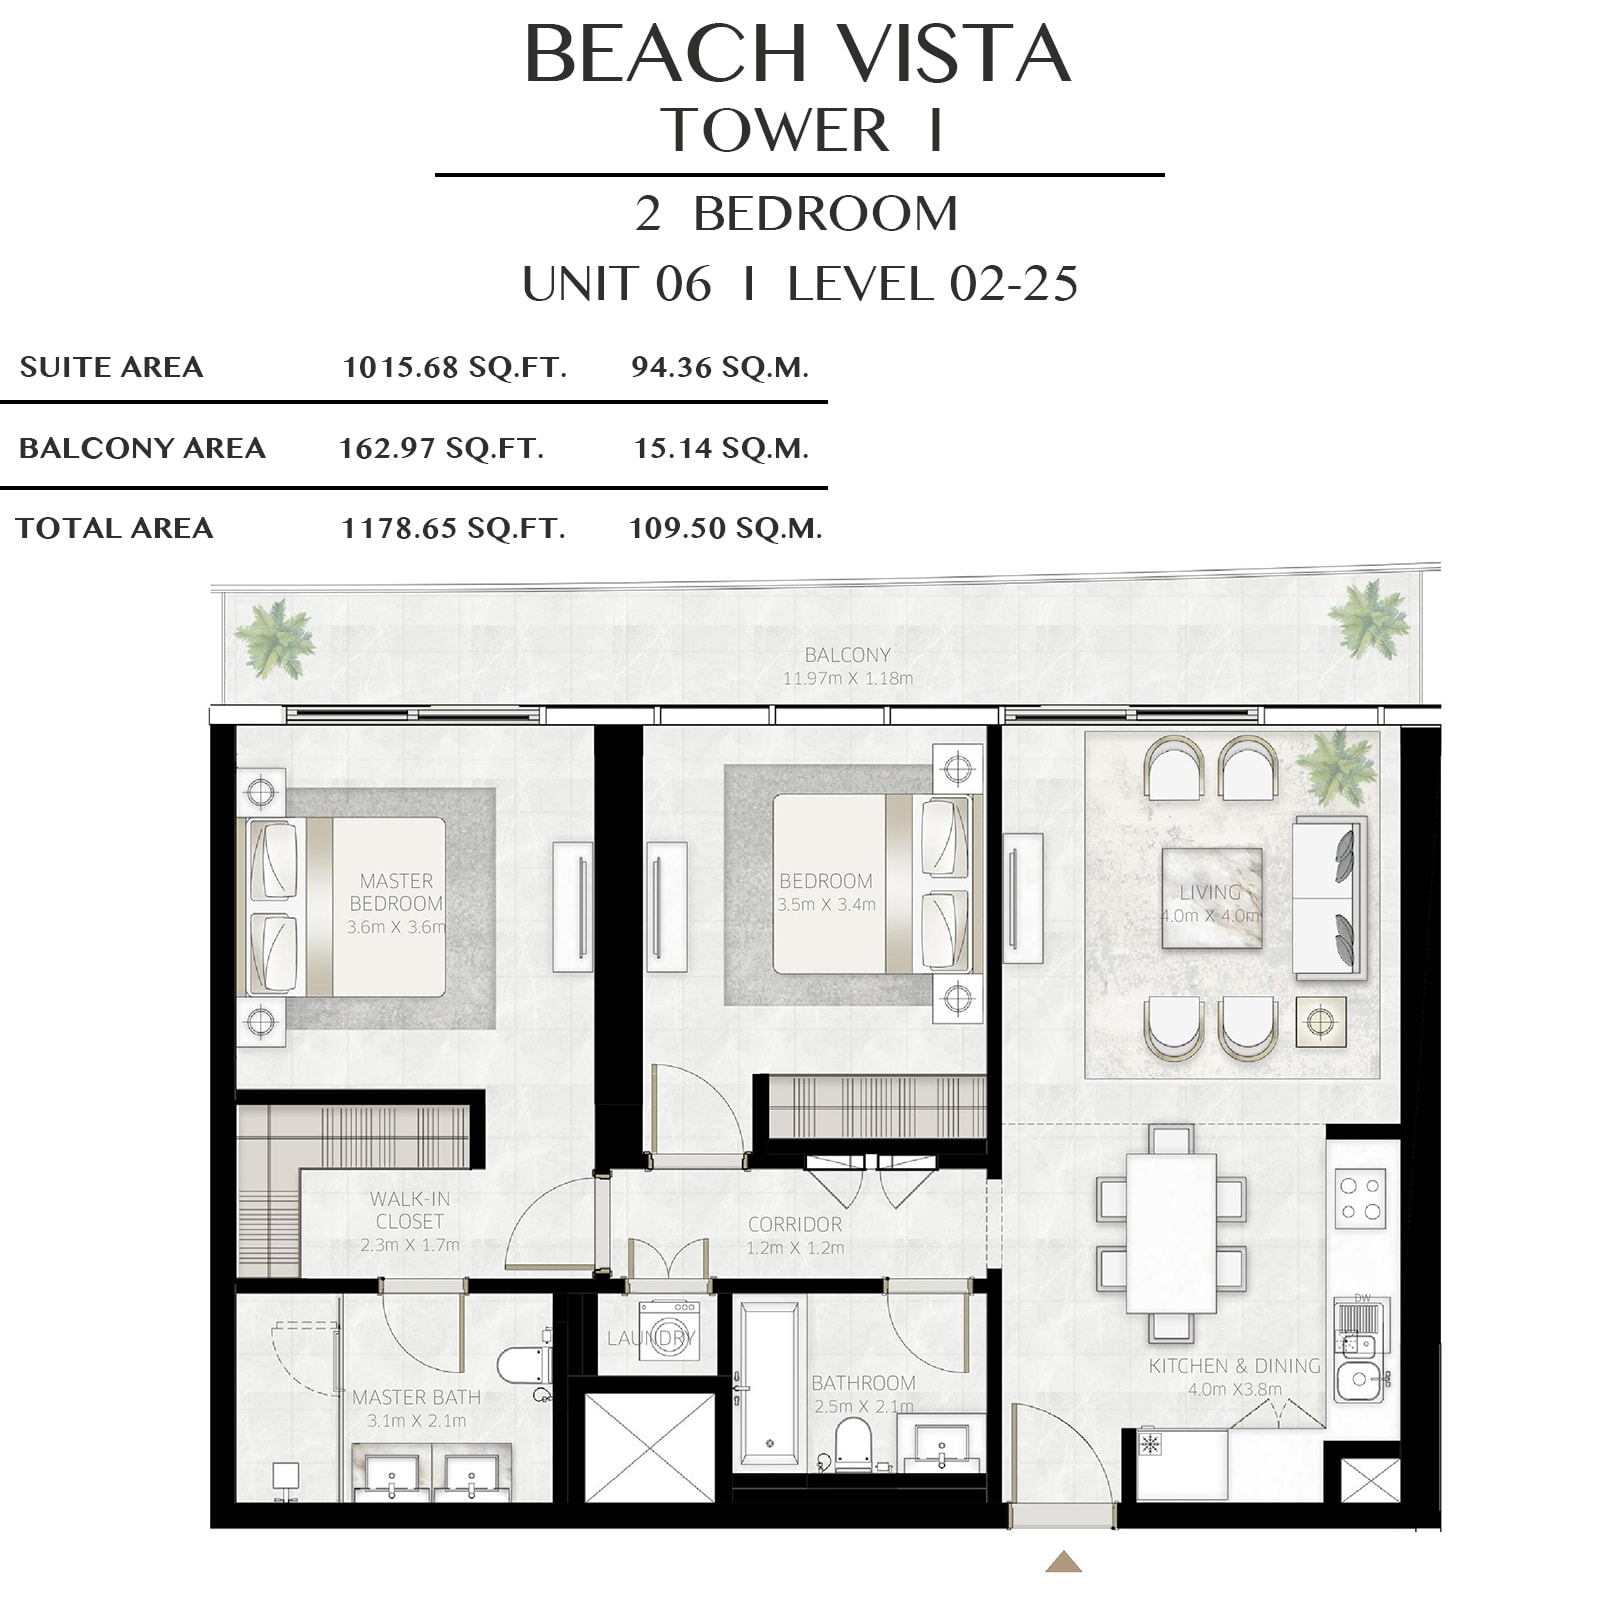 emaar beach vista apartments price dubai